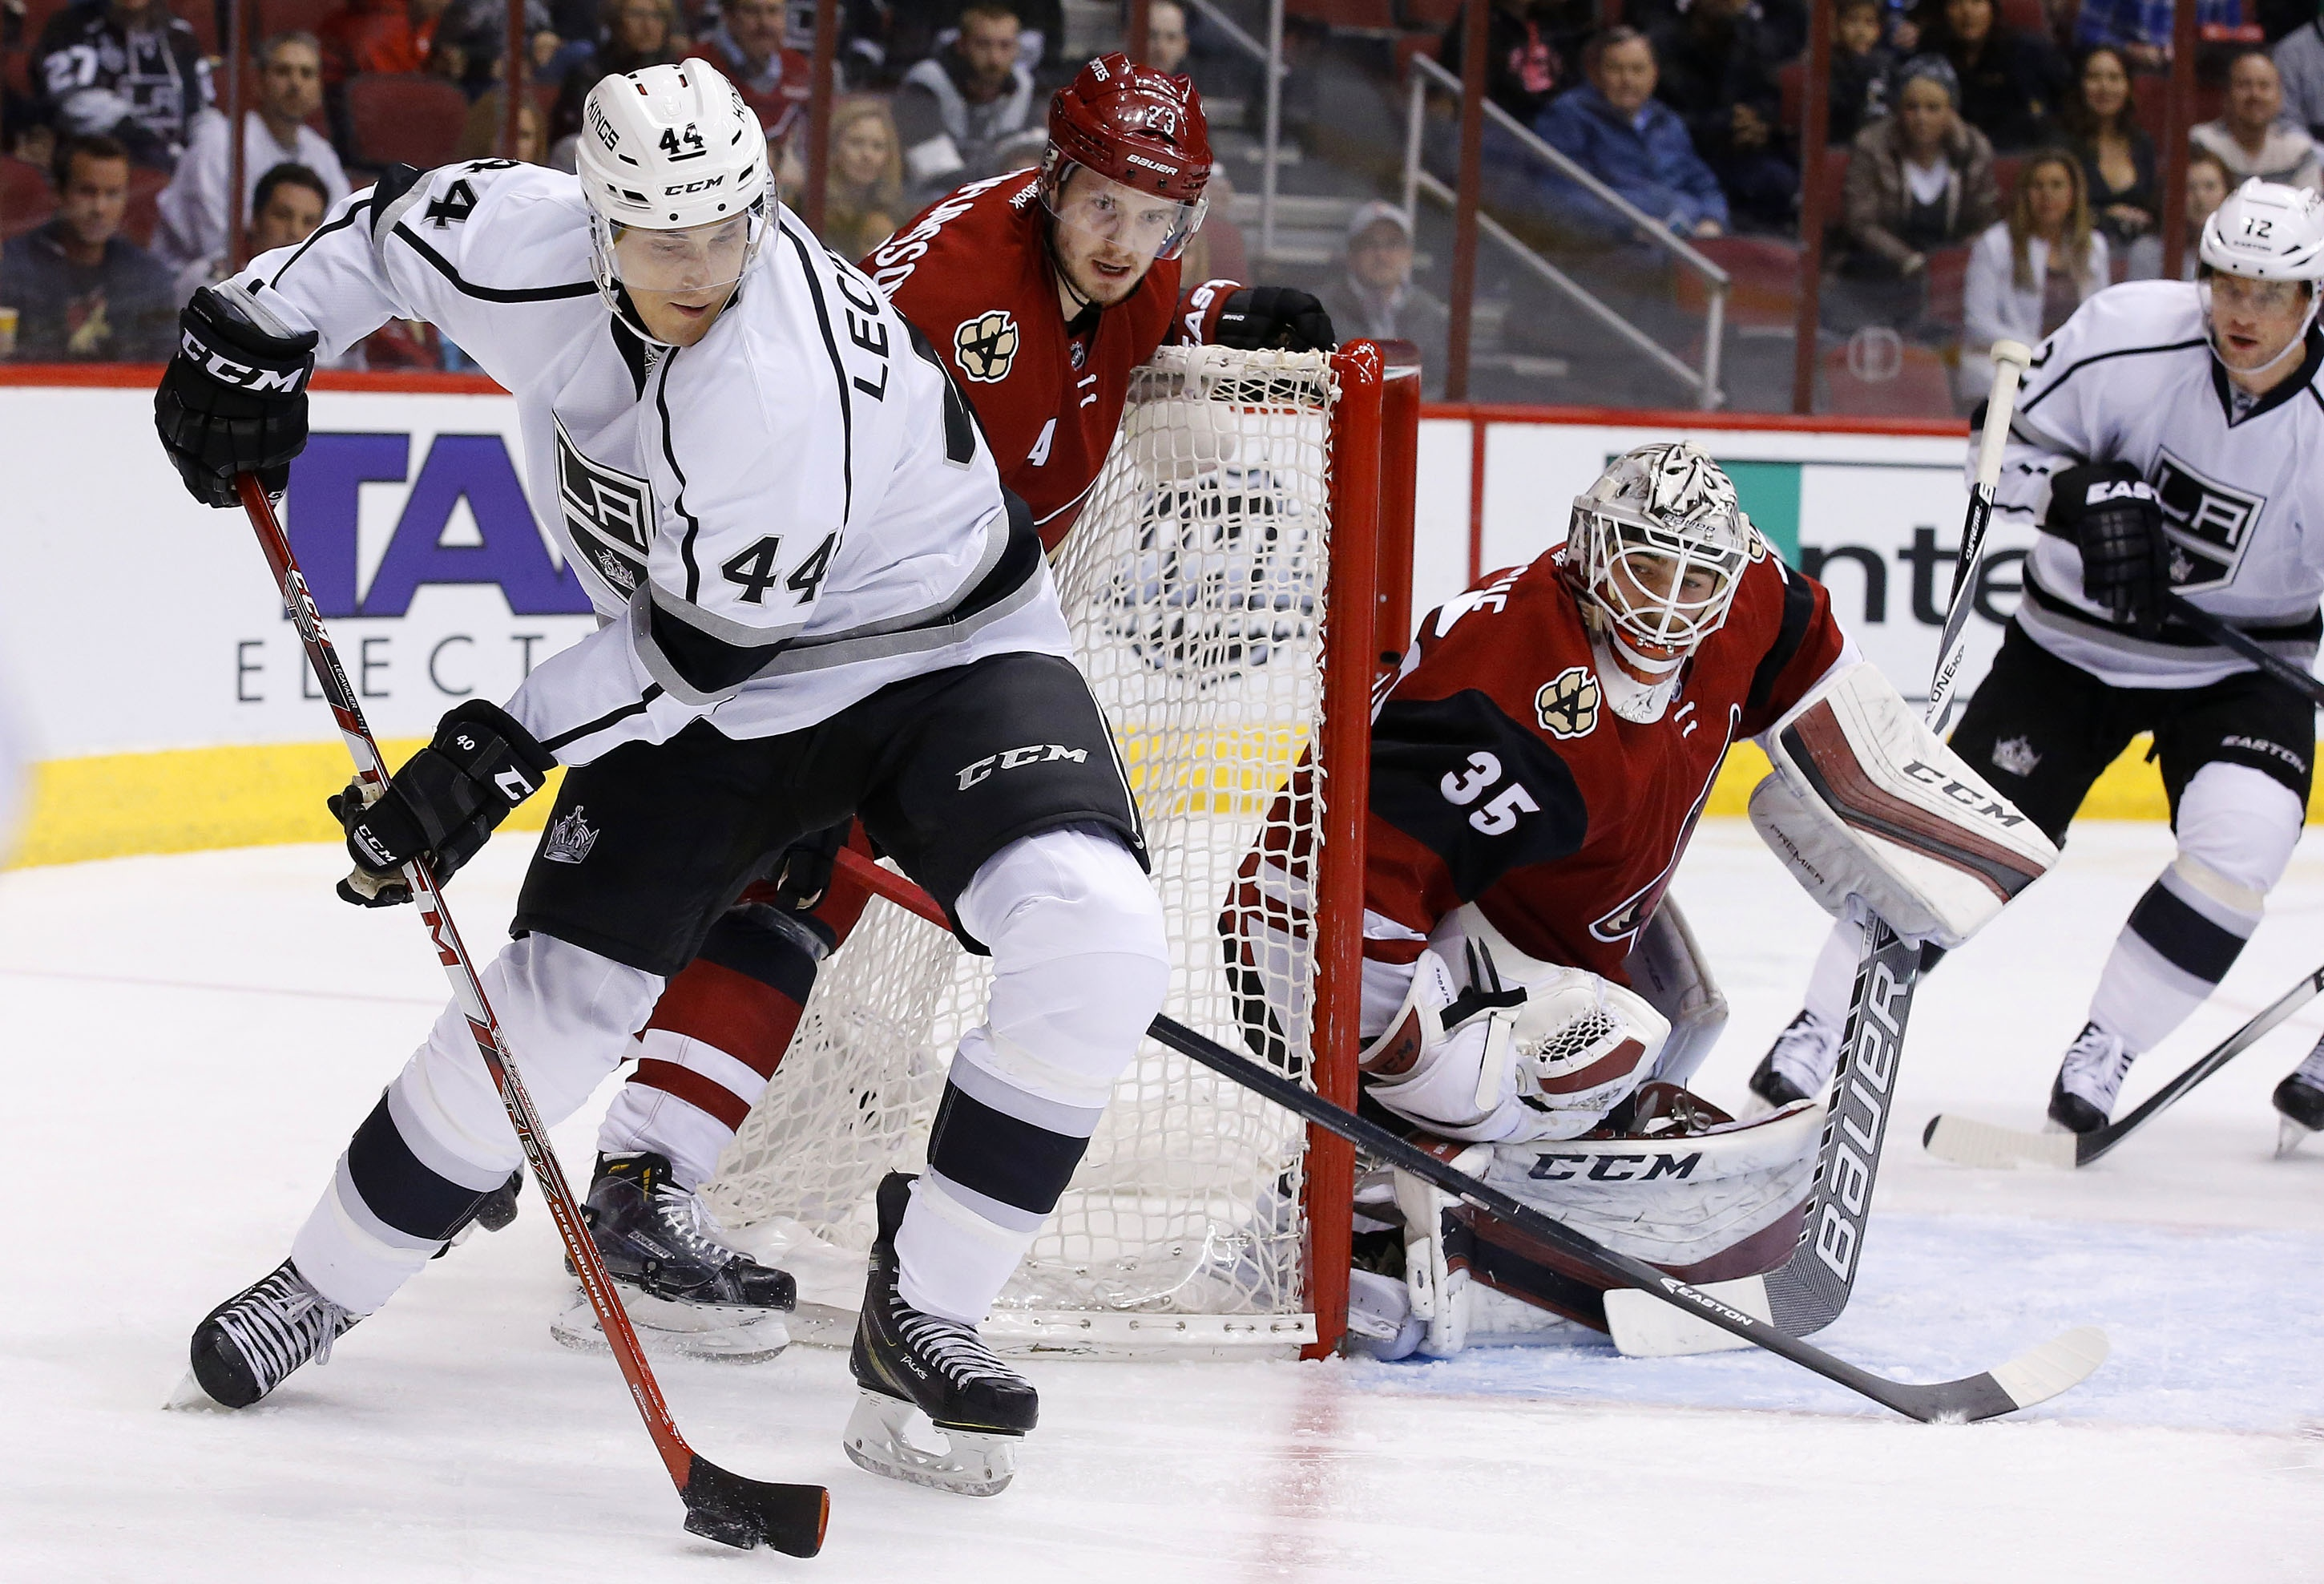 FILE - In this Jan. 23, 2016, file photo, Los Angeles Kings' Vincent Lecavalier (44) moves with the puck as Arizona Coyotes' Oliver Ekman-Larsson (23), of Sweden, defends and Coyotes goalie Louis Domingue (35) and Kings' Marian Gaborik (12), of the Czech